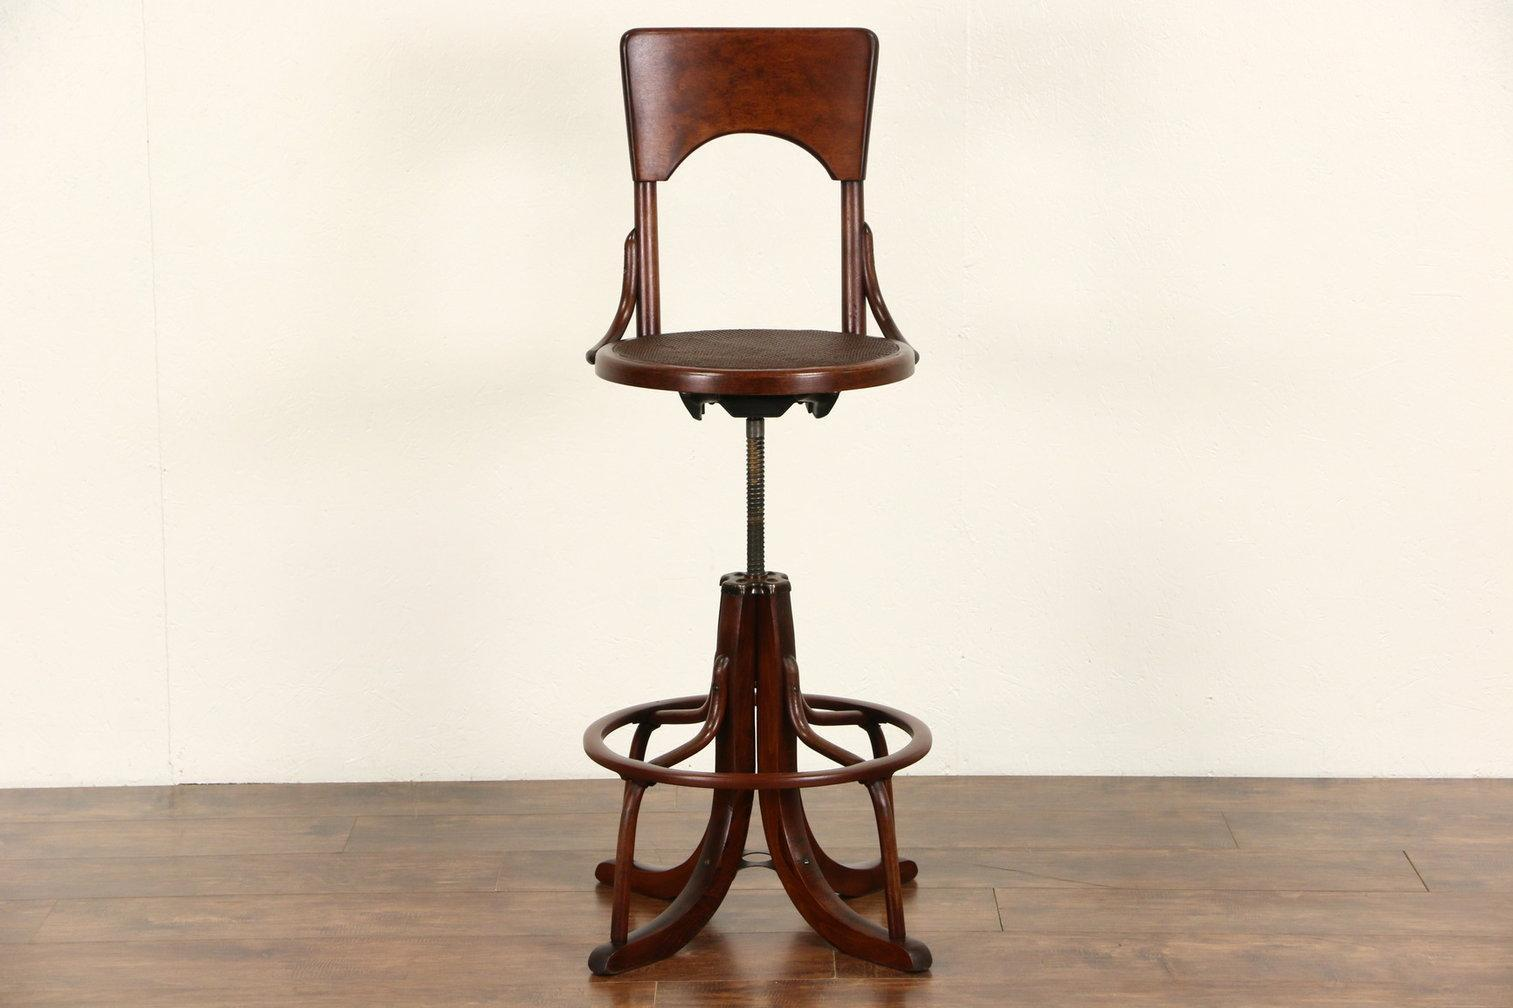 Roll over Large image to magnify, click Large image to zoom - Swivel 1920's Antique Architect, Artist Or Drafting Stool With